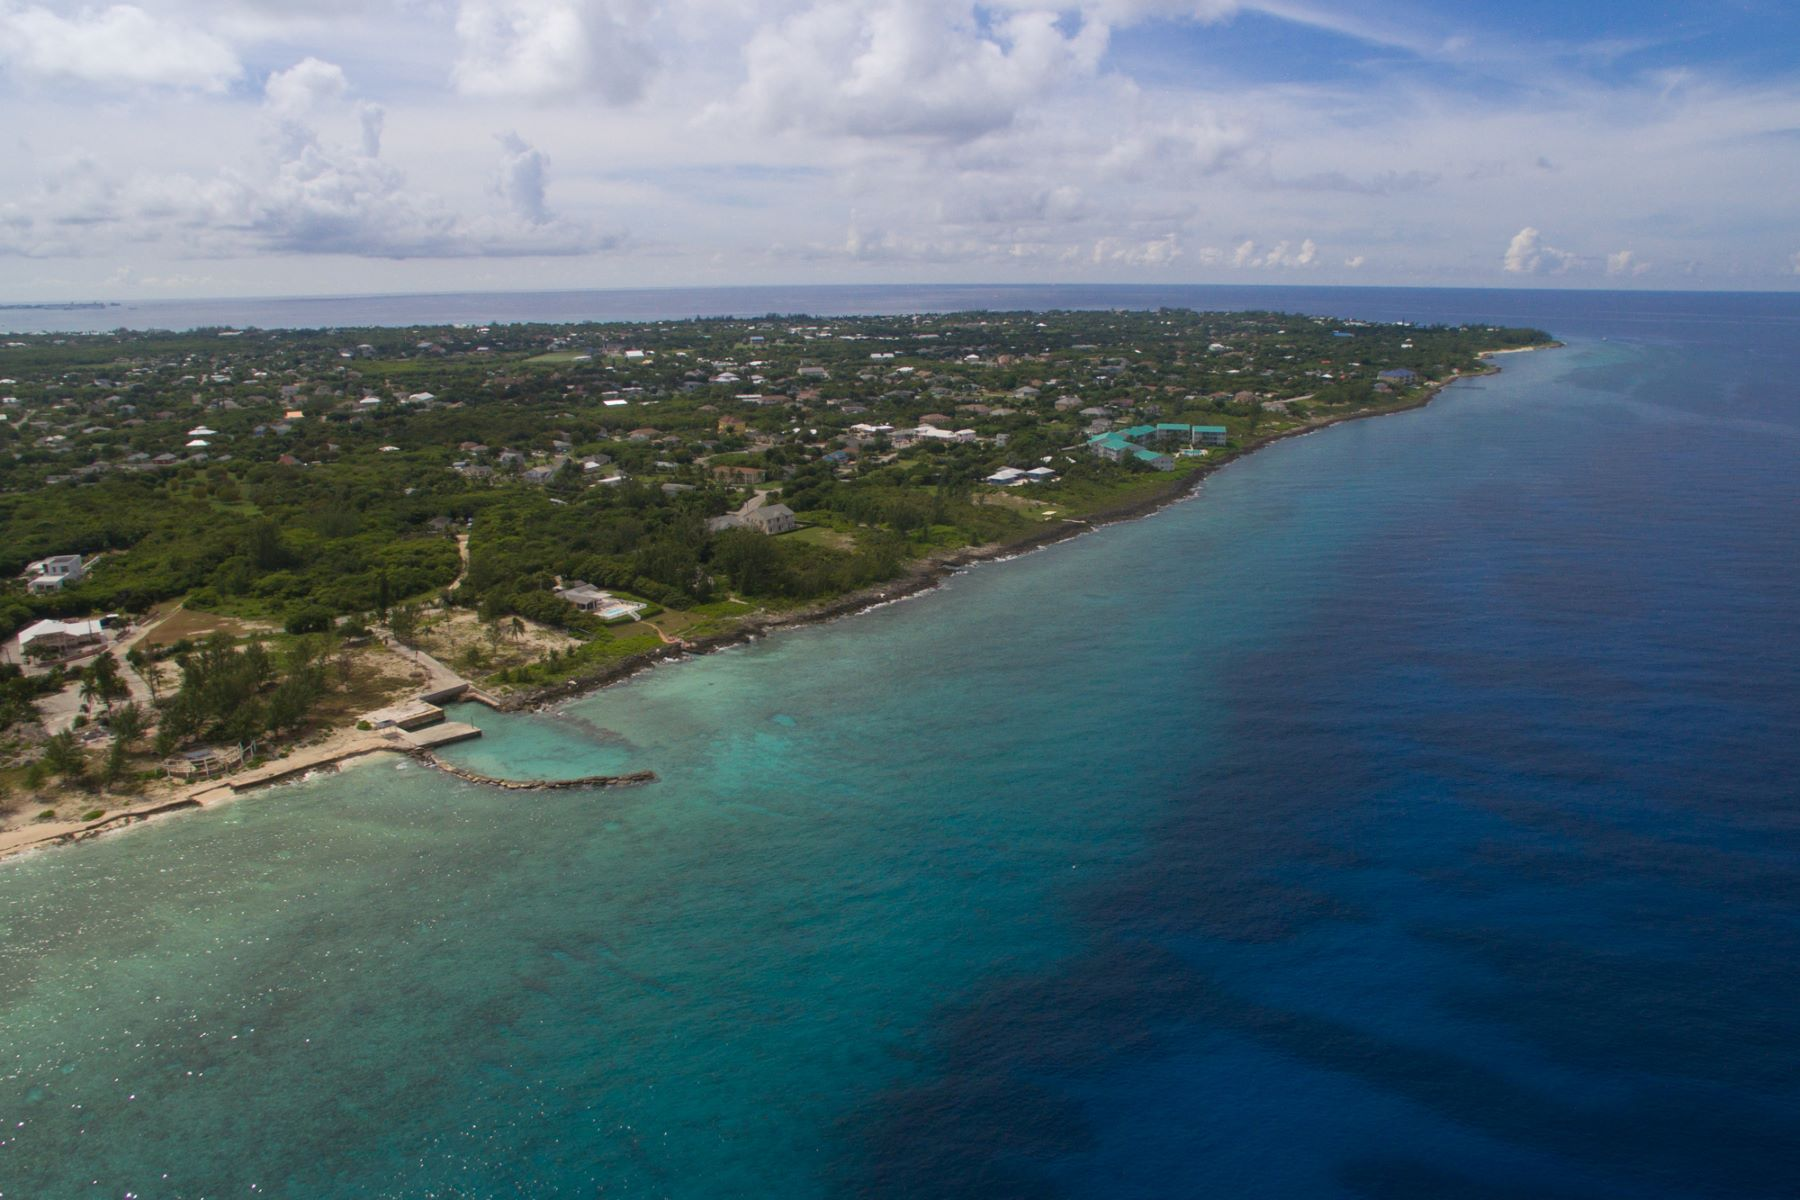 Land for Sale at Spanish Bay ocean front home Conch Point Rd Spanish Bay West Bay, Grand Cayman, KY1 Cayman Islands